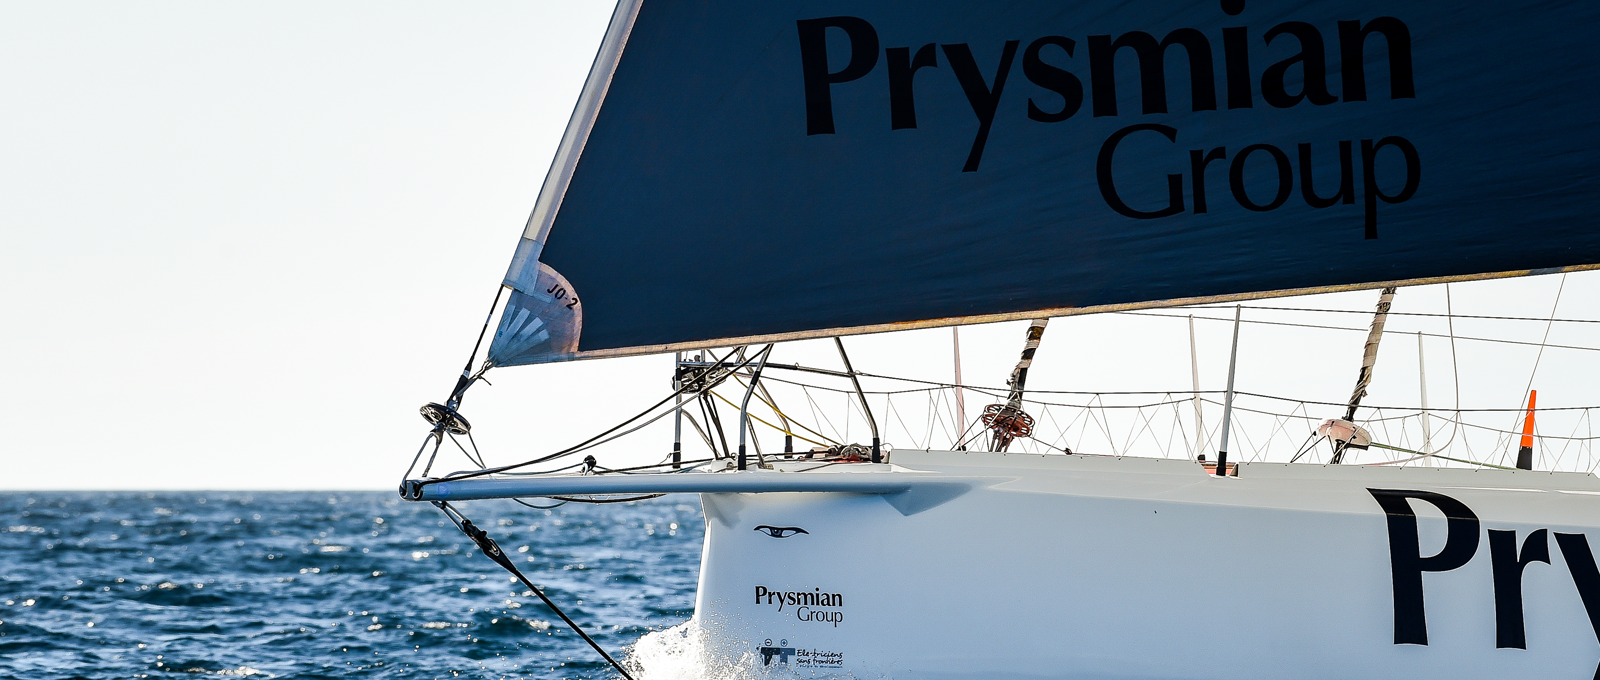 Prysmian and skipper Pedote: the only Italian team at the Vendée Globe 2020 race, the globe-spanning solo sailboat race known as the Mount Everest of the seas.